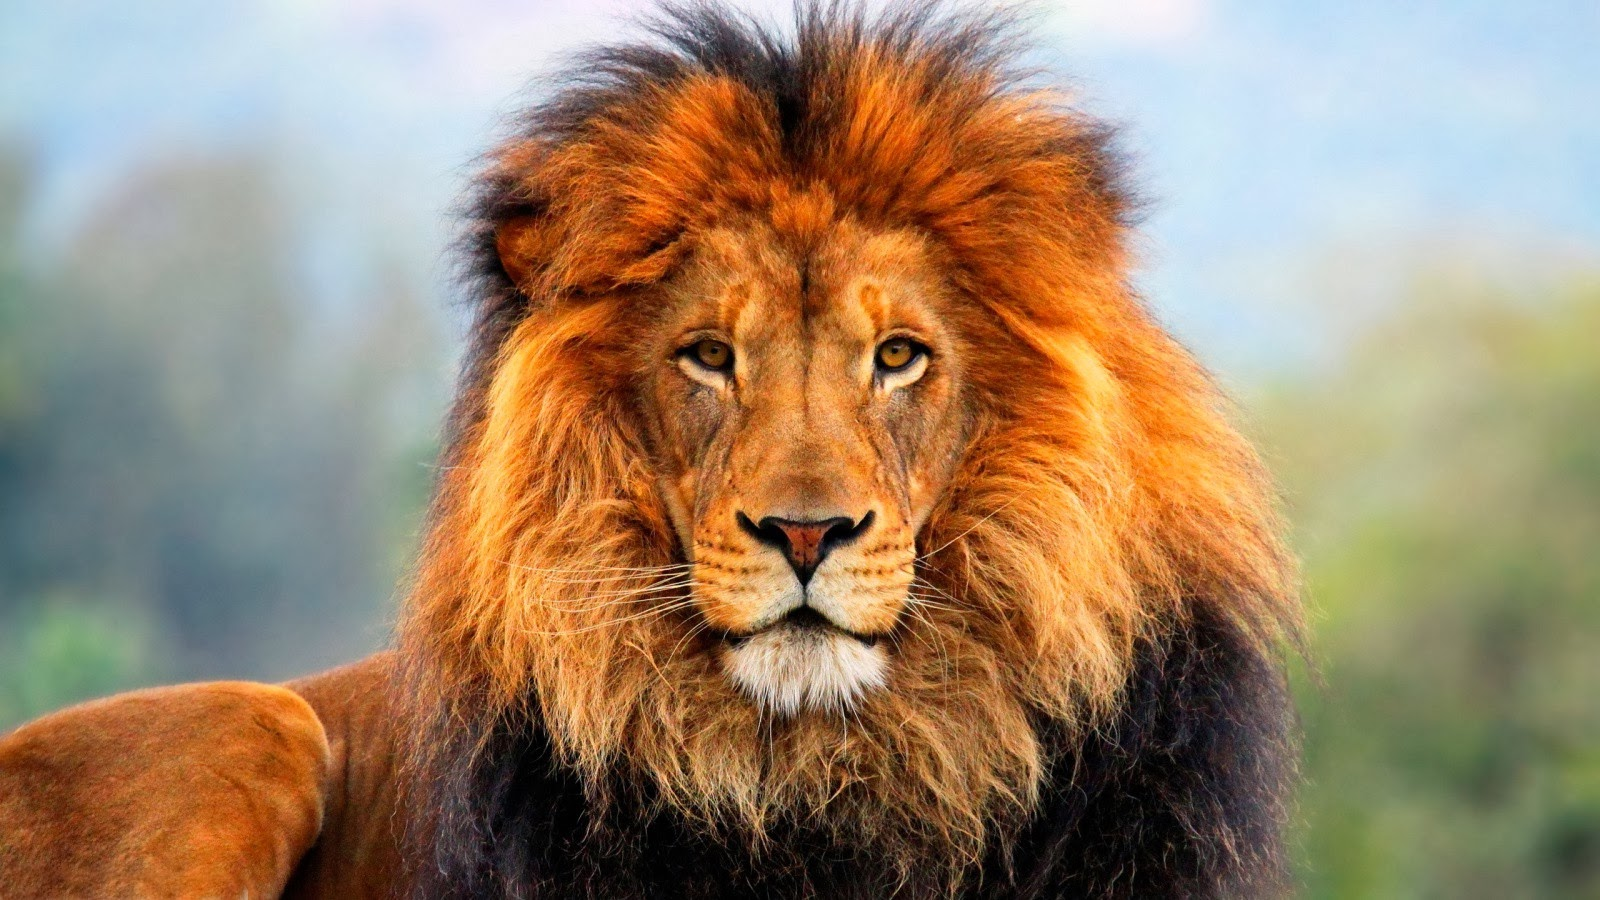 wildlife hd wallpapers: lions hd wallpapers (the king of jungle) 2014.